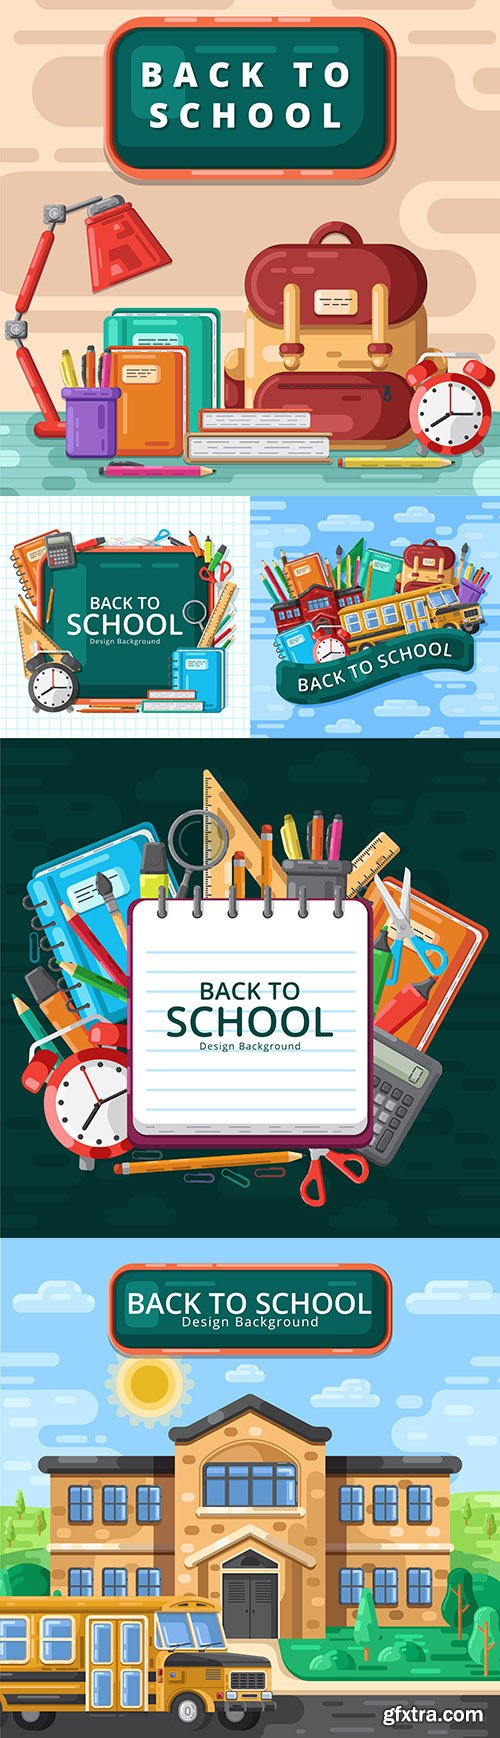 Back to school and accessories collection illustration 35